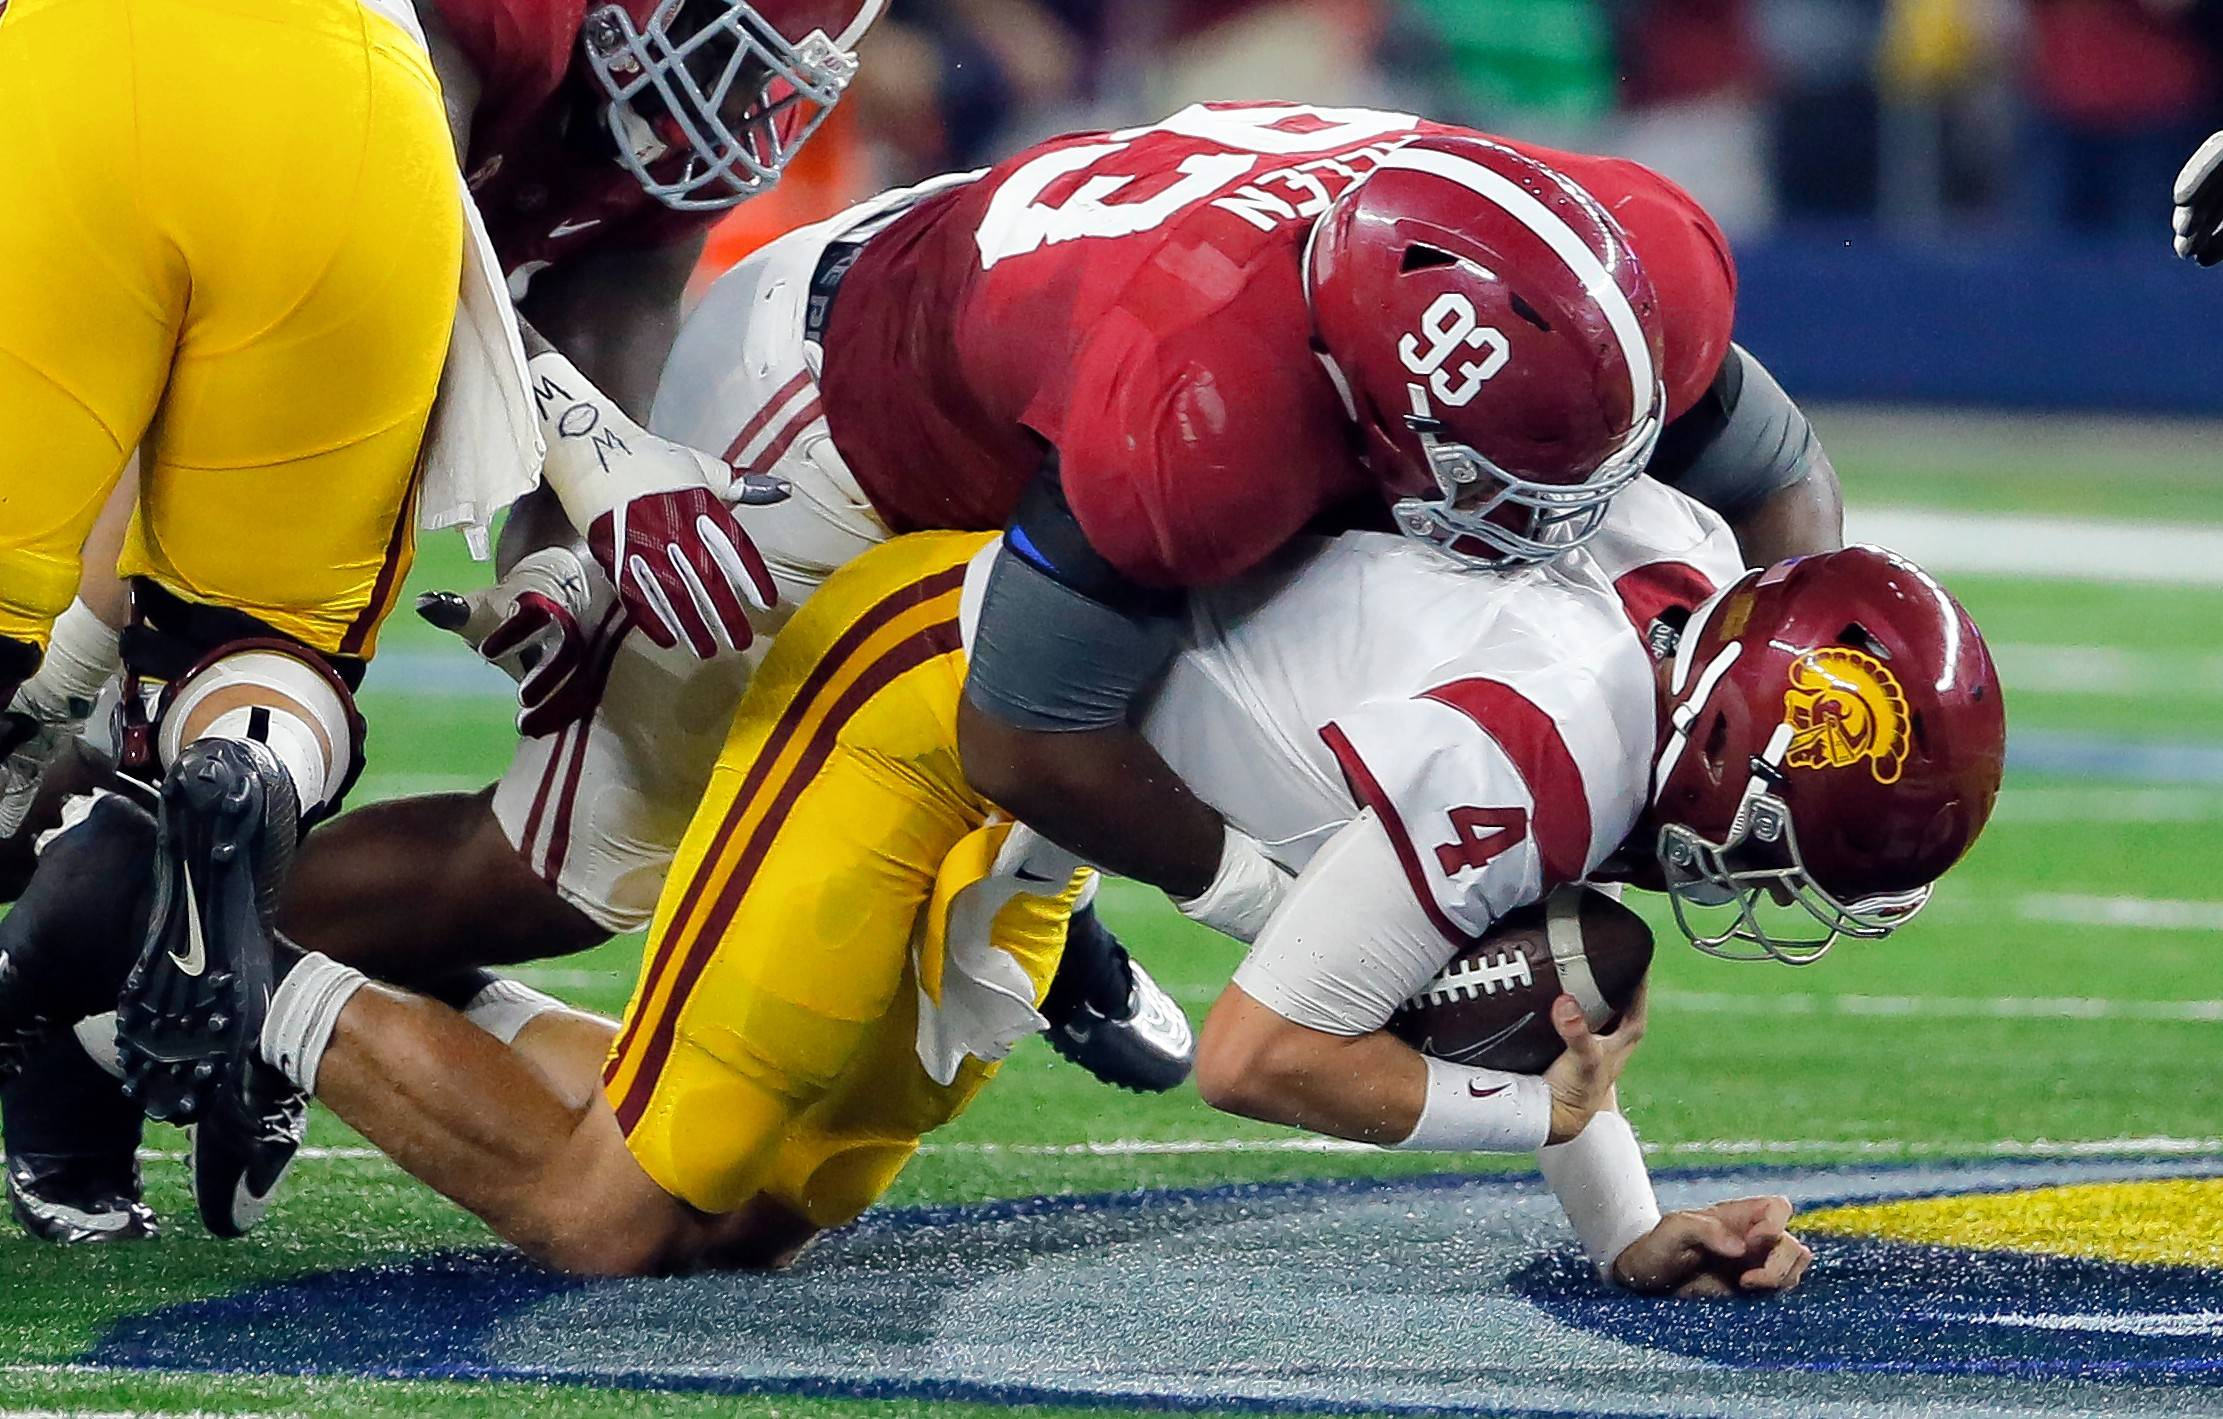 Associated press File Photo There's no reason the Bears shouldn't use the third overall selection on Alabama defensive lineman Jonathan Allen.